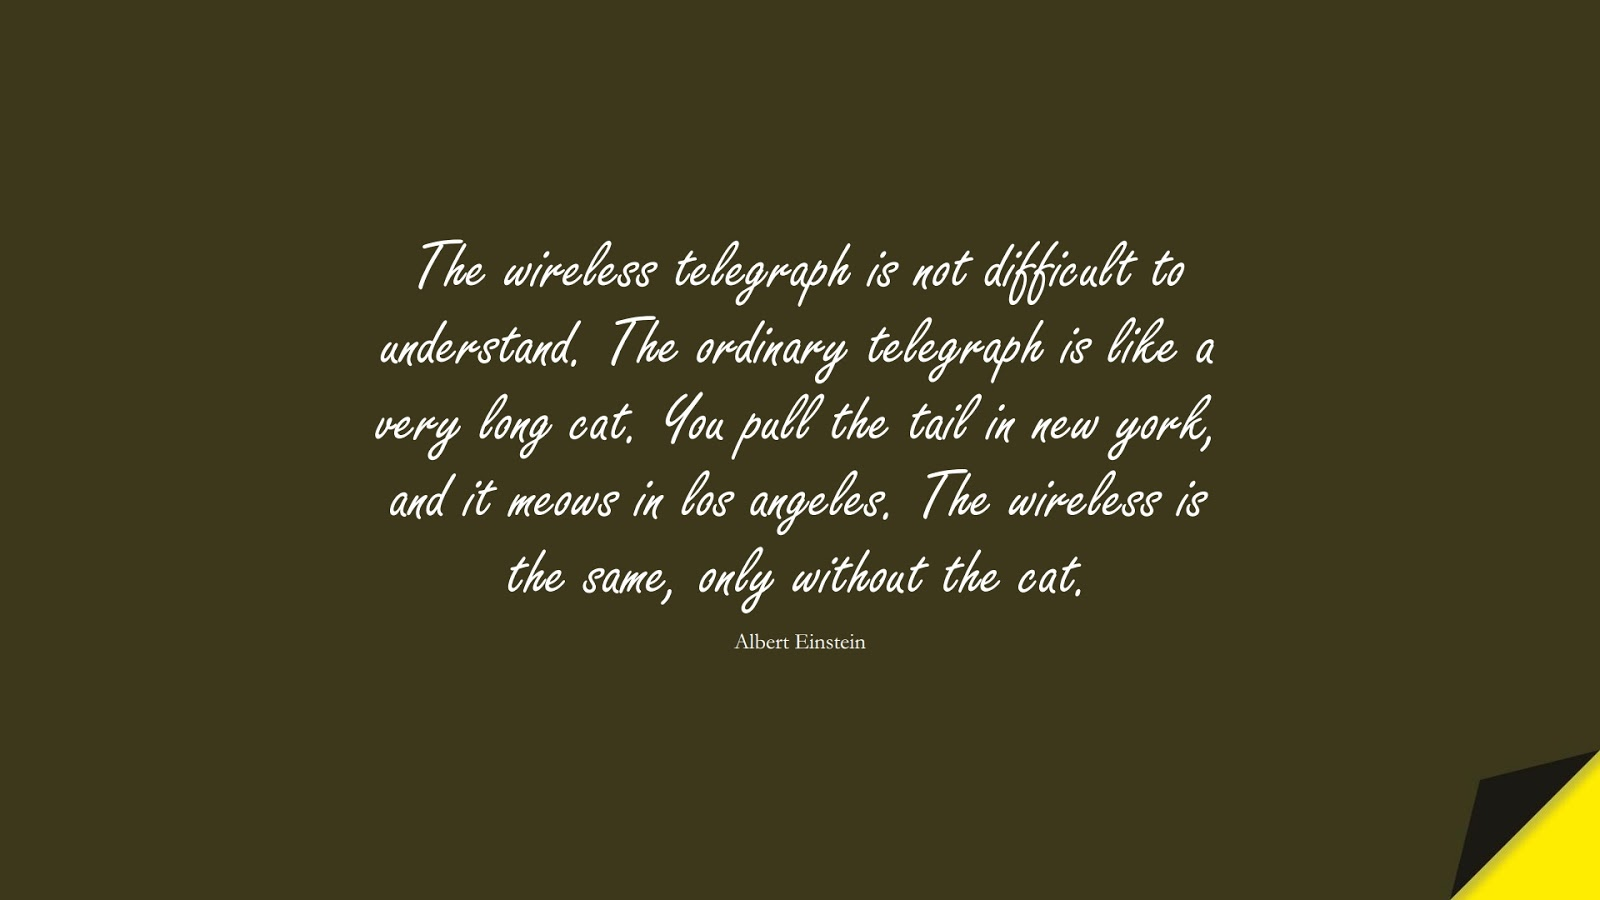 The wireless telegraph is not difficult to understand. The ordinary telegraph is like a very long cat. You pull the tail in new york, and it meows in los angeles. The wireless is the same, only without the cat. (Albert Einstein);  #AlbertEnsteinQuotes